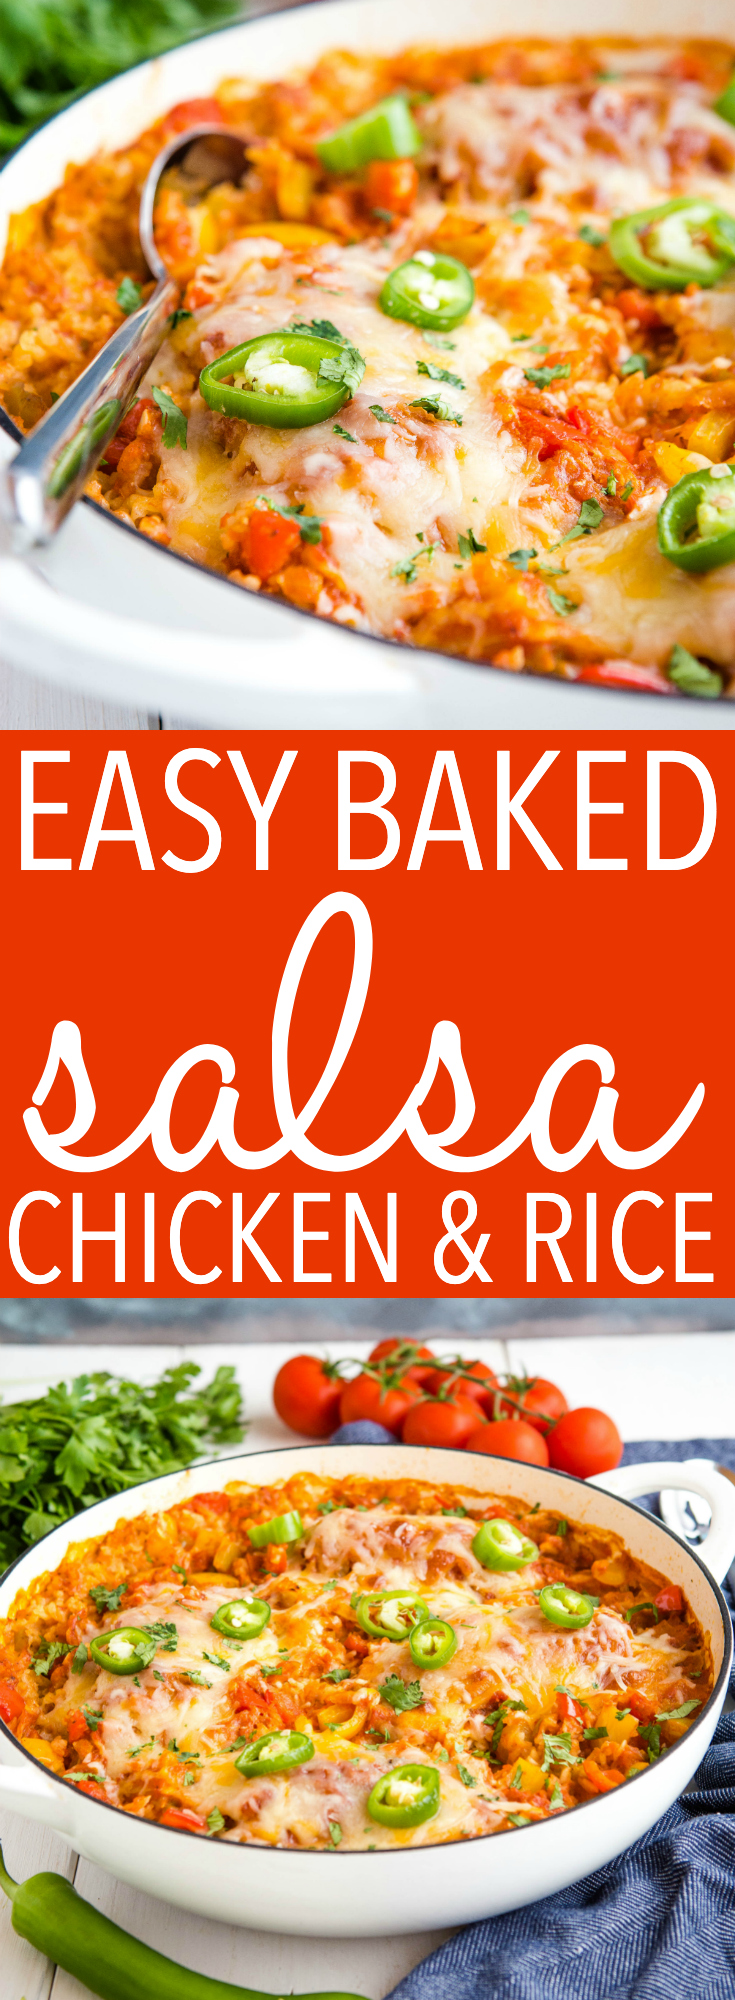 This Easy Baked Salsa Chicken and Rice is a super easy Mexican-inspired weeknight meal made in only one pan! On the table in about 30 minutes! Recipe from thebusybaker.ca! #salsa #chicken #rice #onepan #onepot #meal #mealprep #mealplanning #weeknightmeal #familymeal #family #glutenfree via @busybakerblog